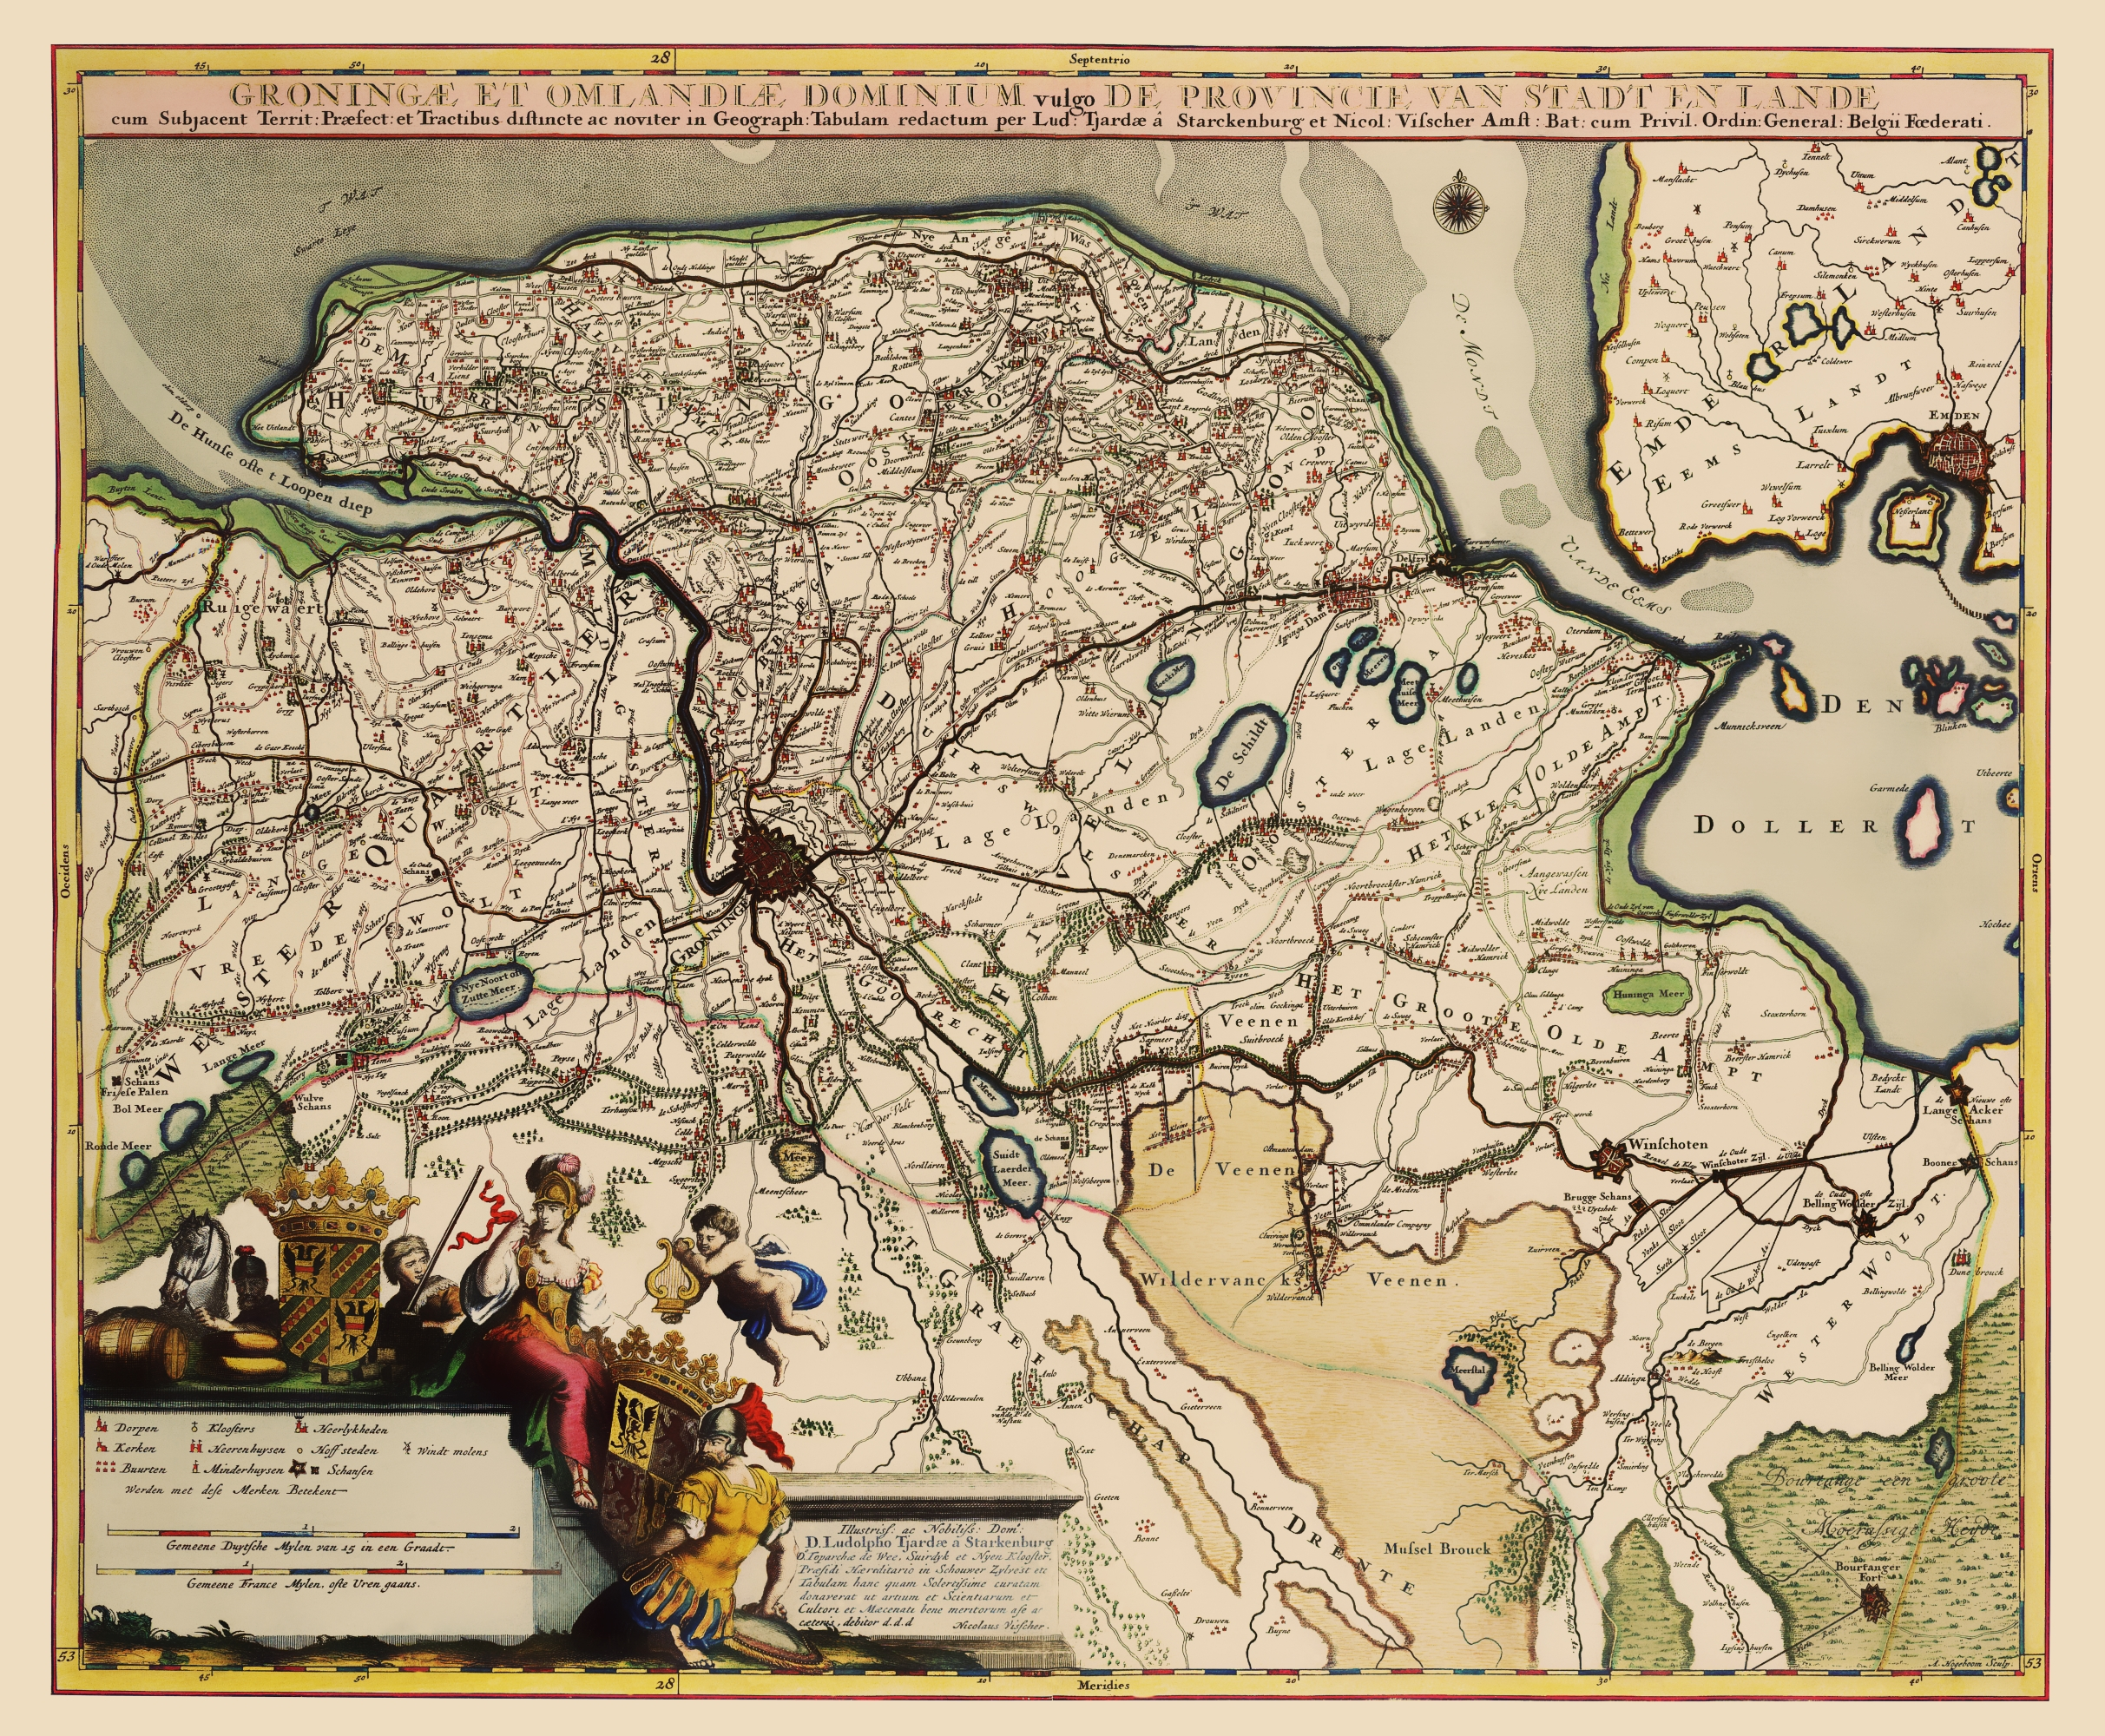 Old Netherlands Map - Groningen Region Visscher 1681